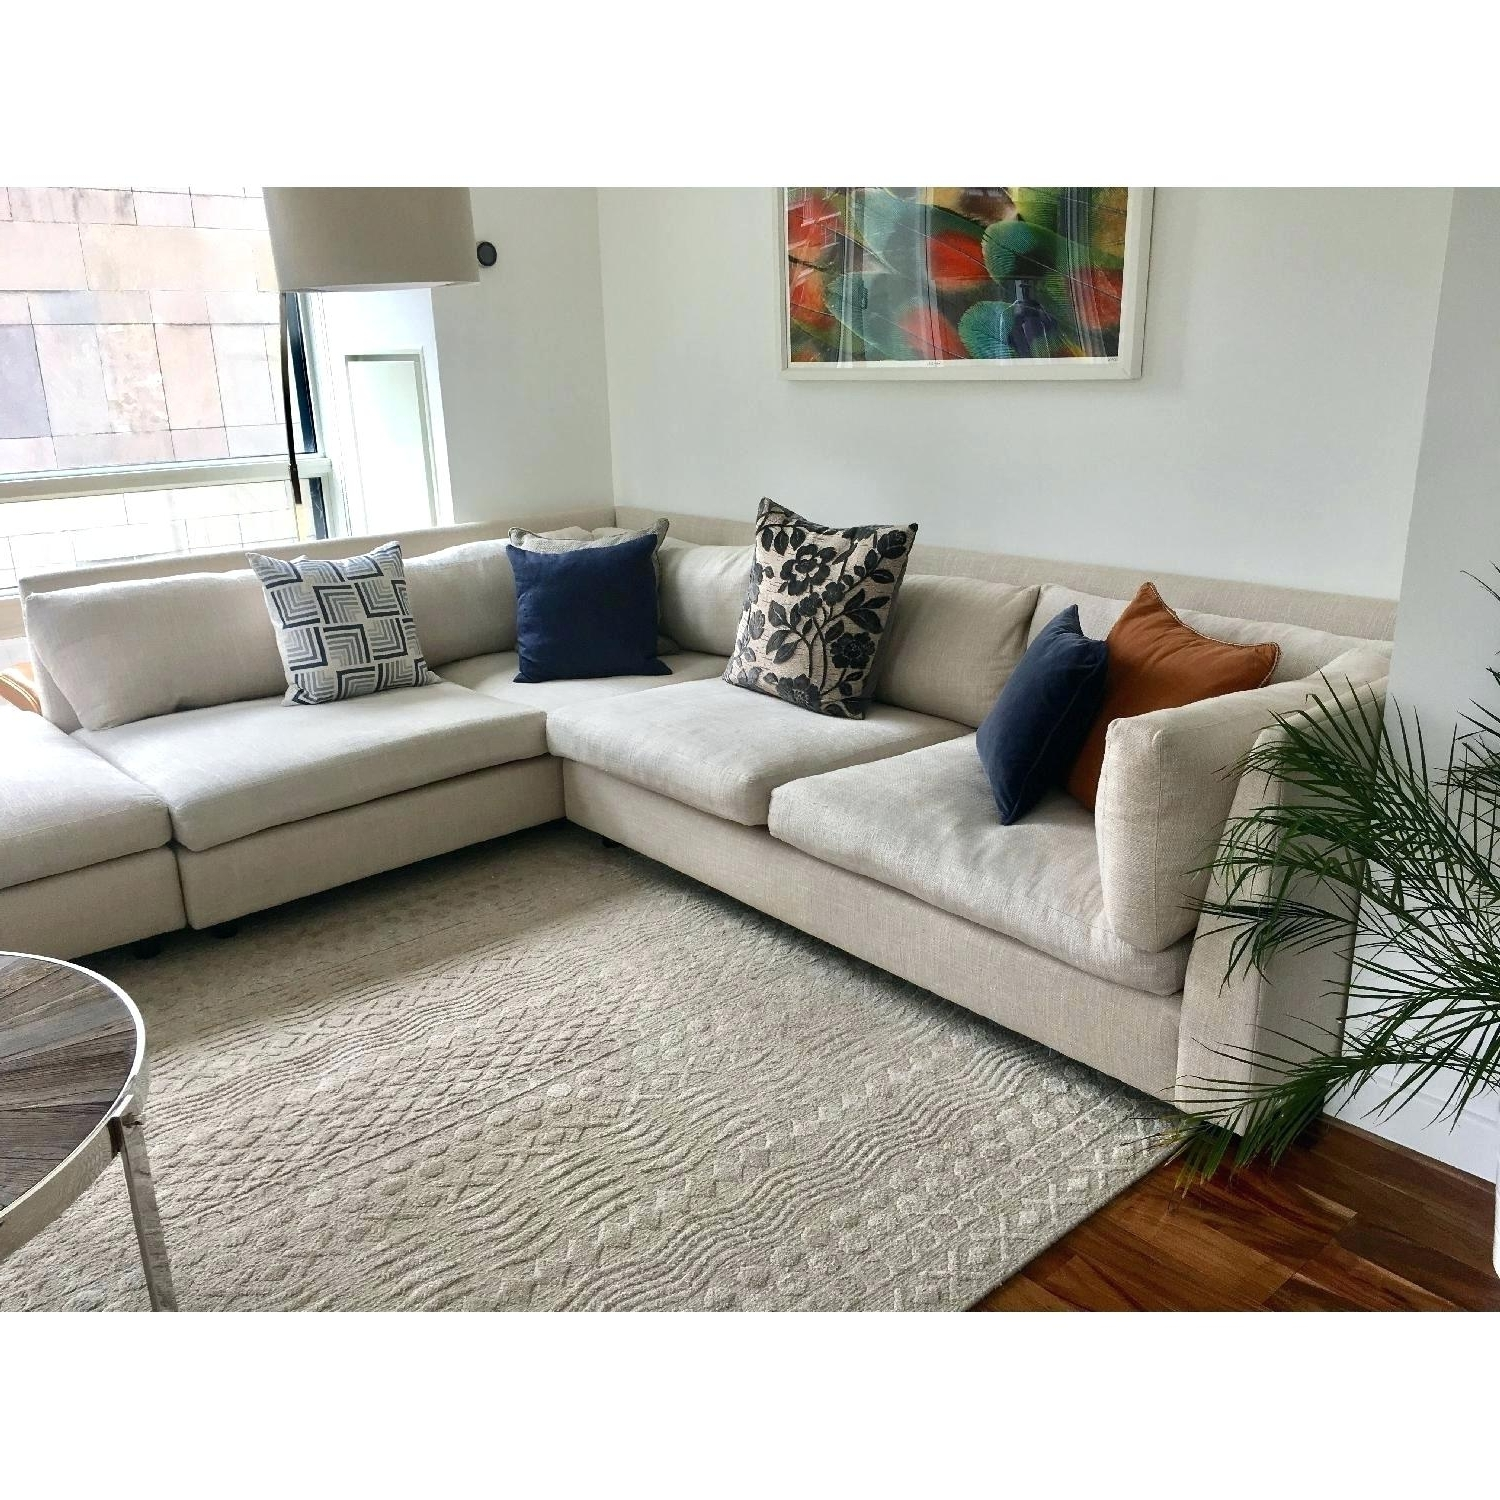 Fashionable Mitchell Gold Sectional Sofa – Jasonatavastrealty In Gold Sectional Sofas (View 14 of 15)